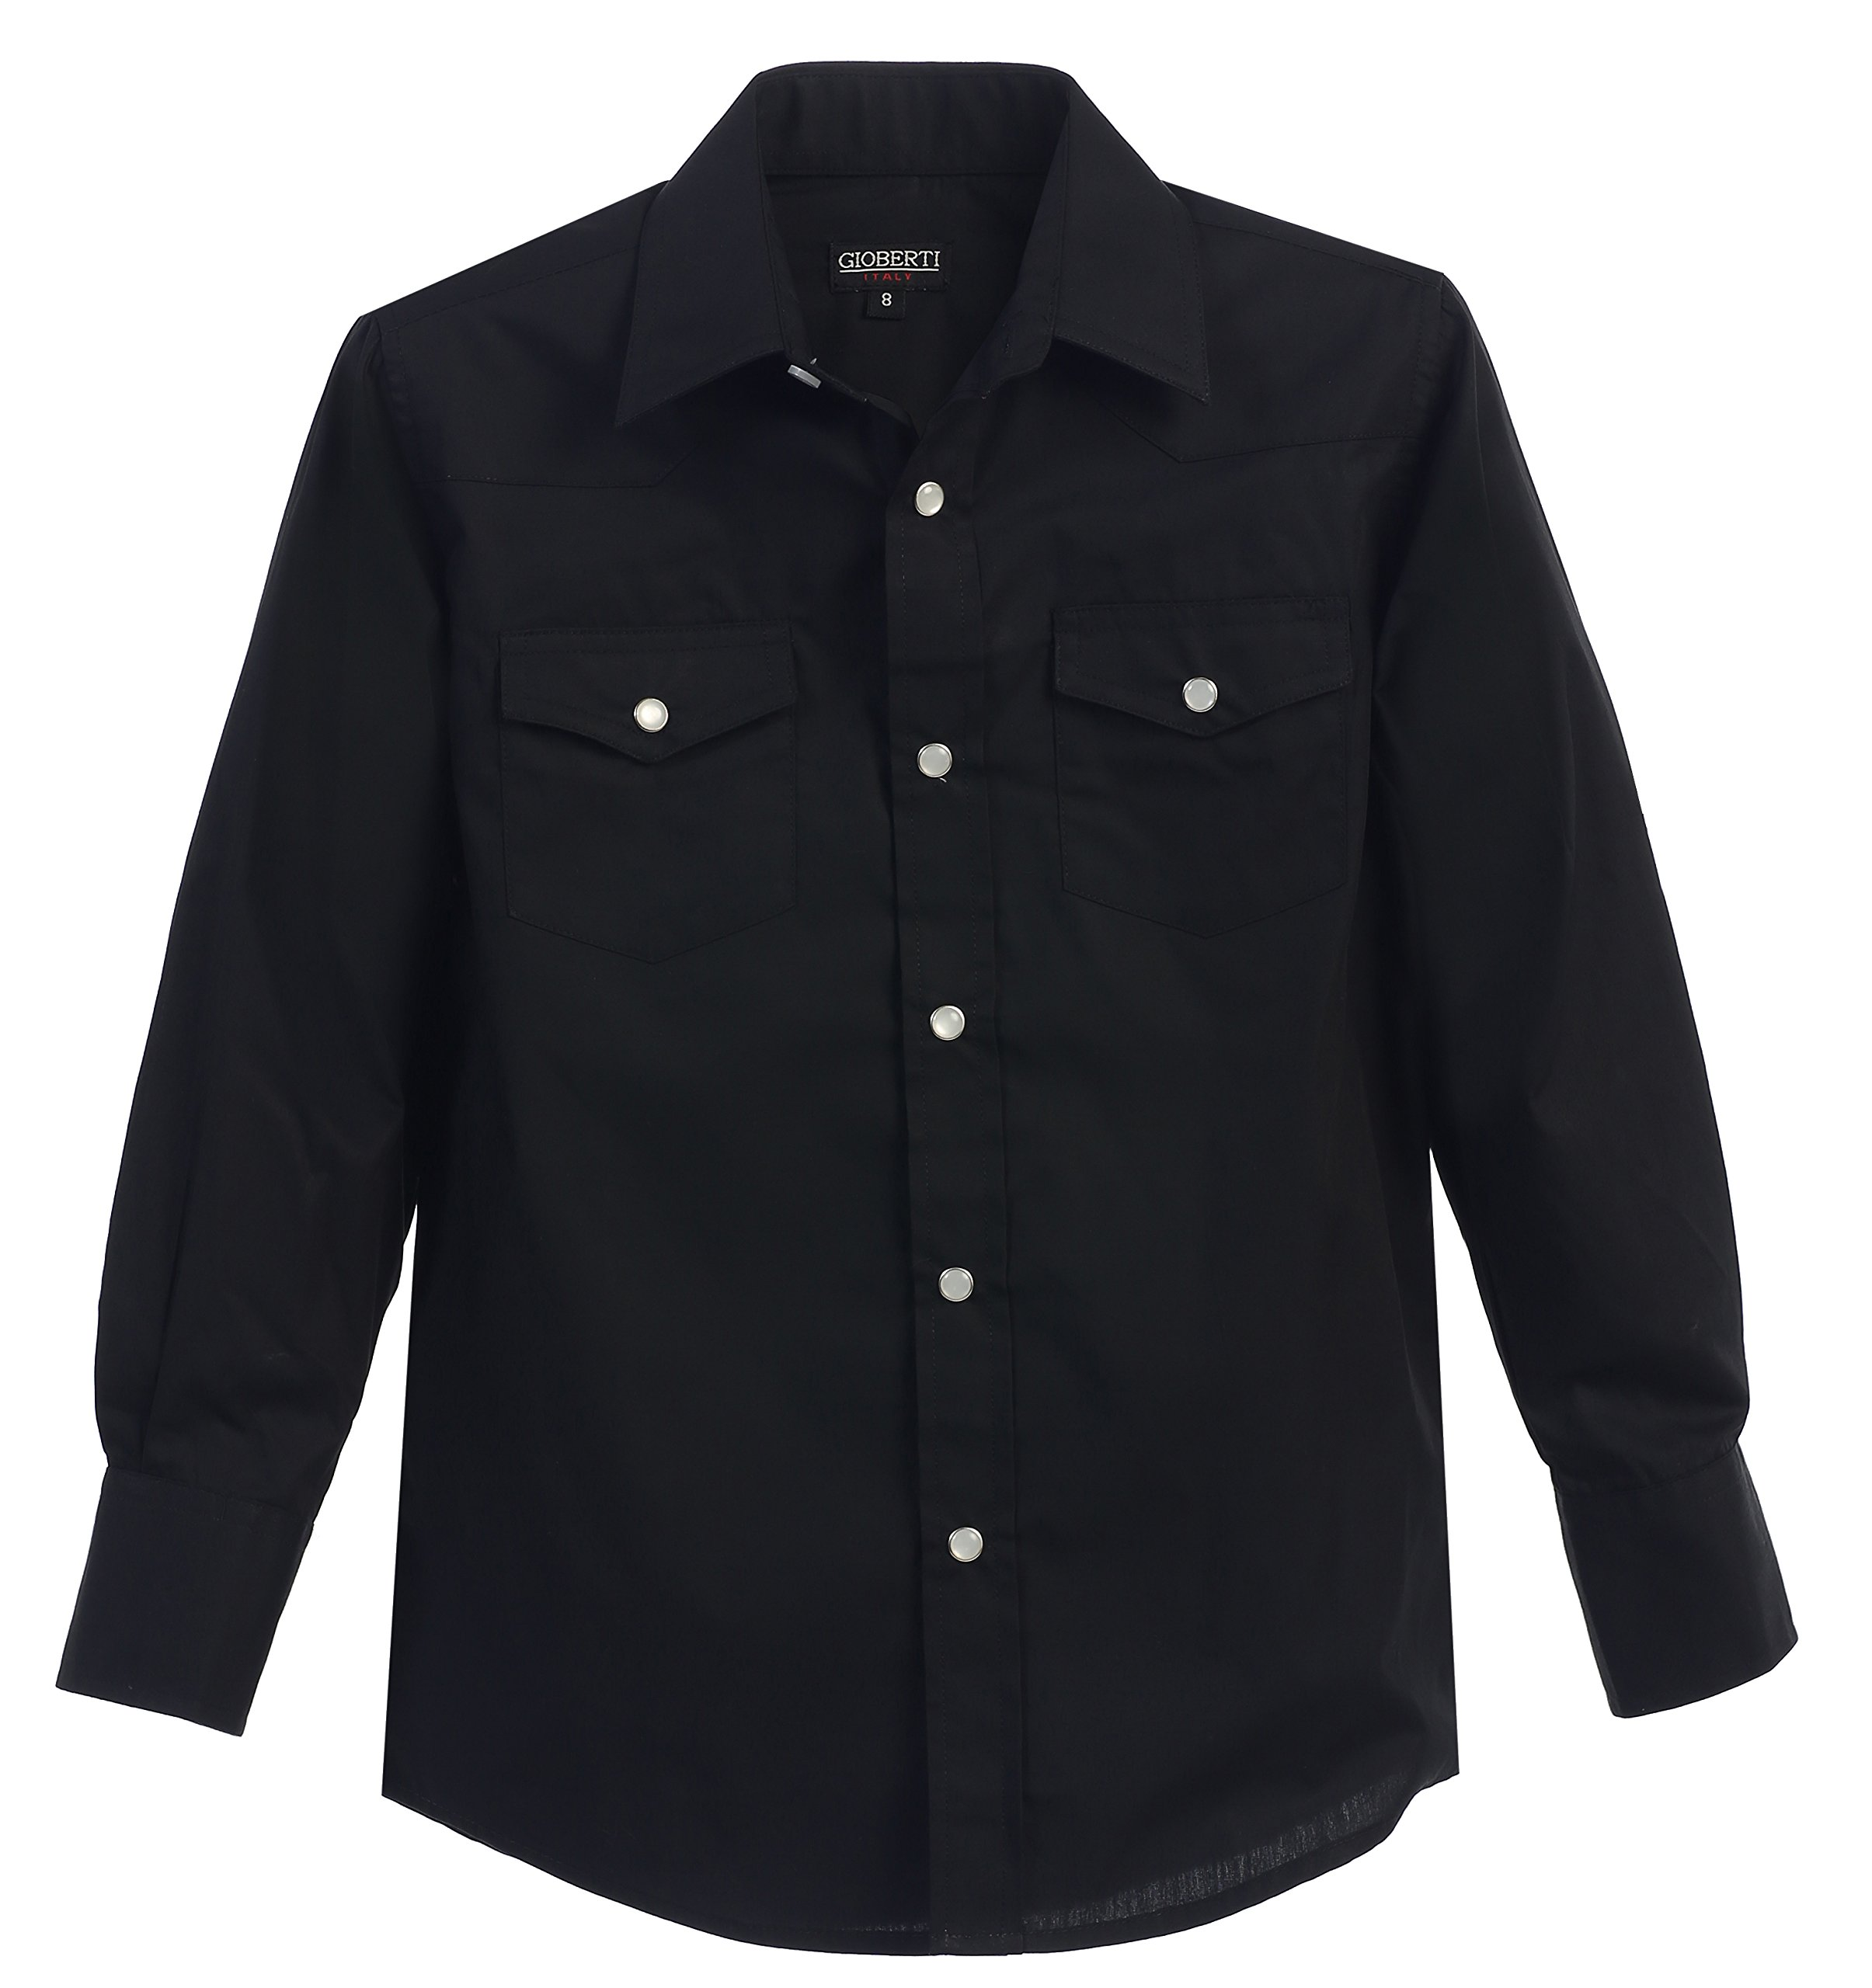 Gioberti Little Boys Casual Western Solid Long Sleeve Shirt with Pearl Snaps, Black, Size 6